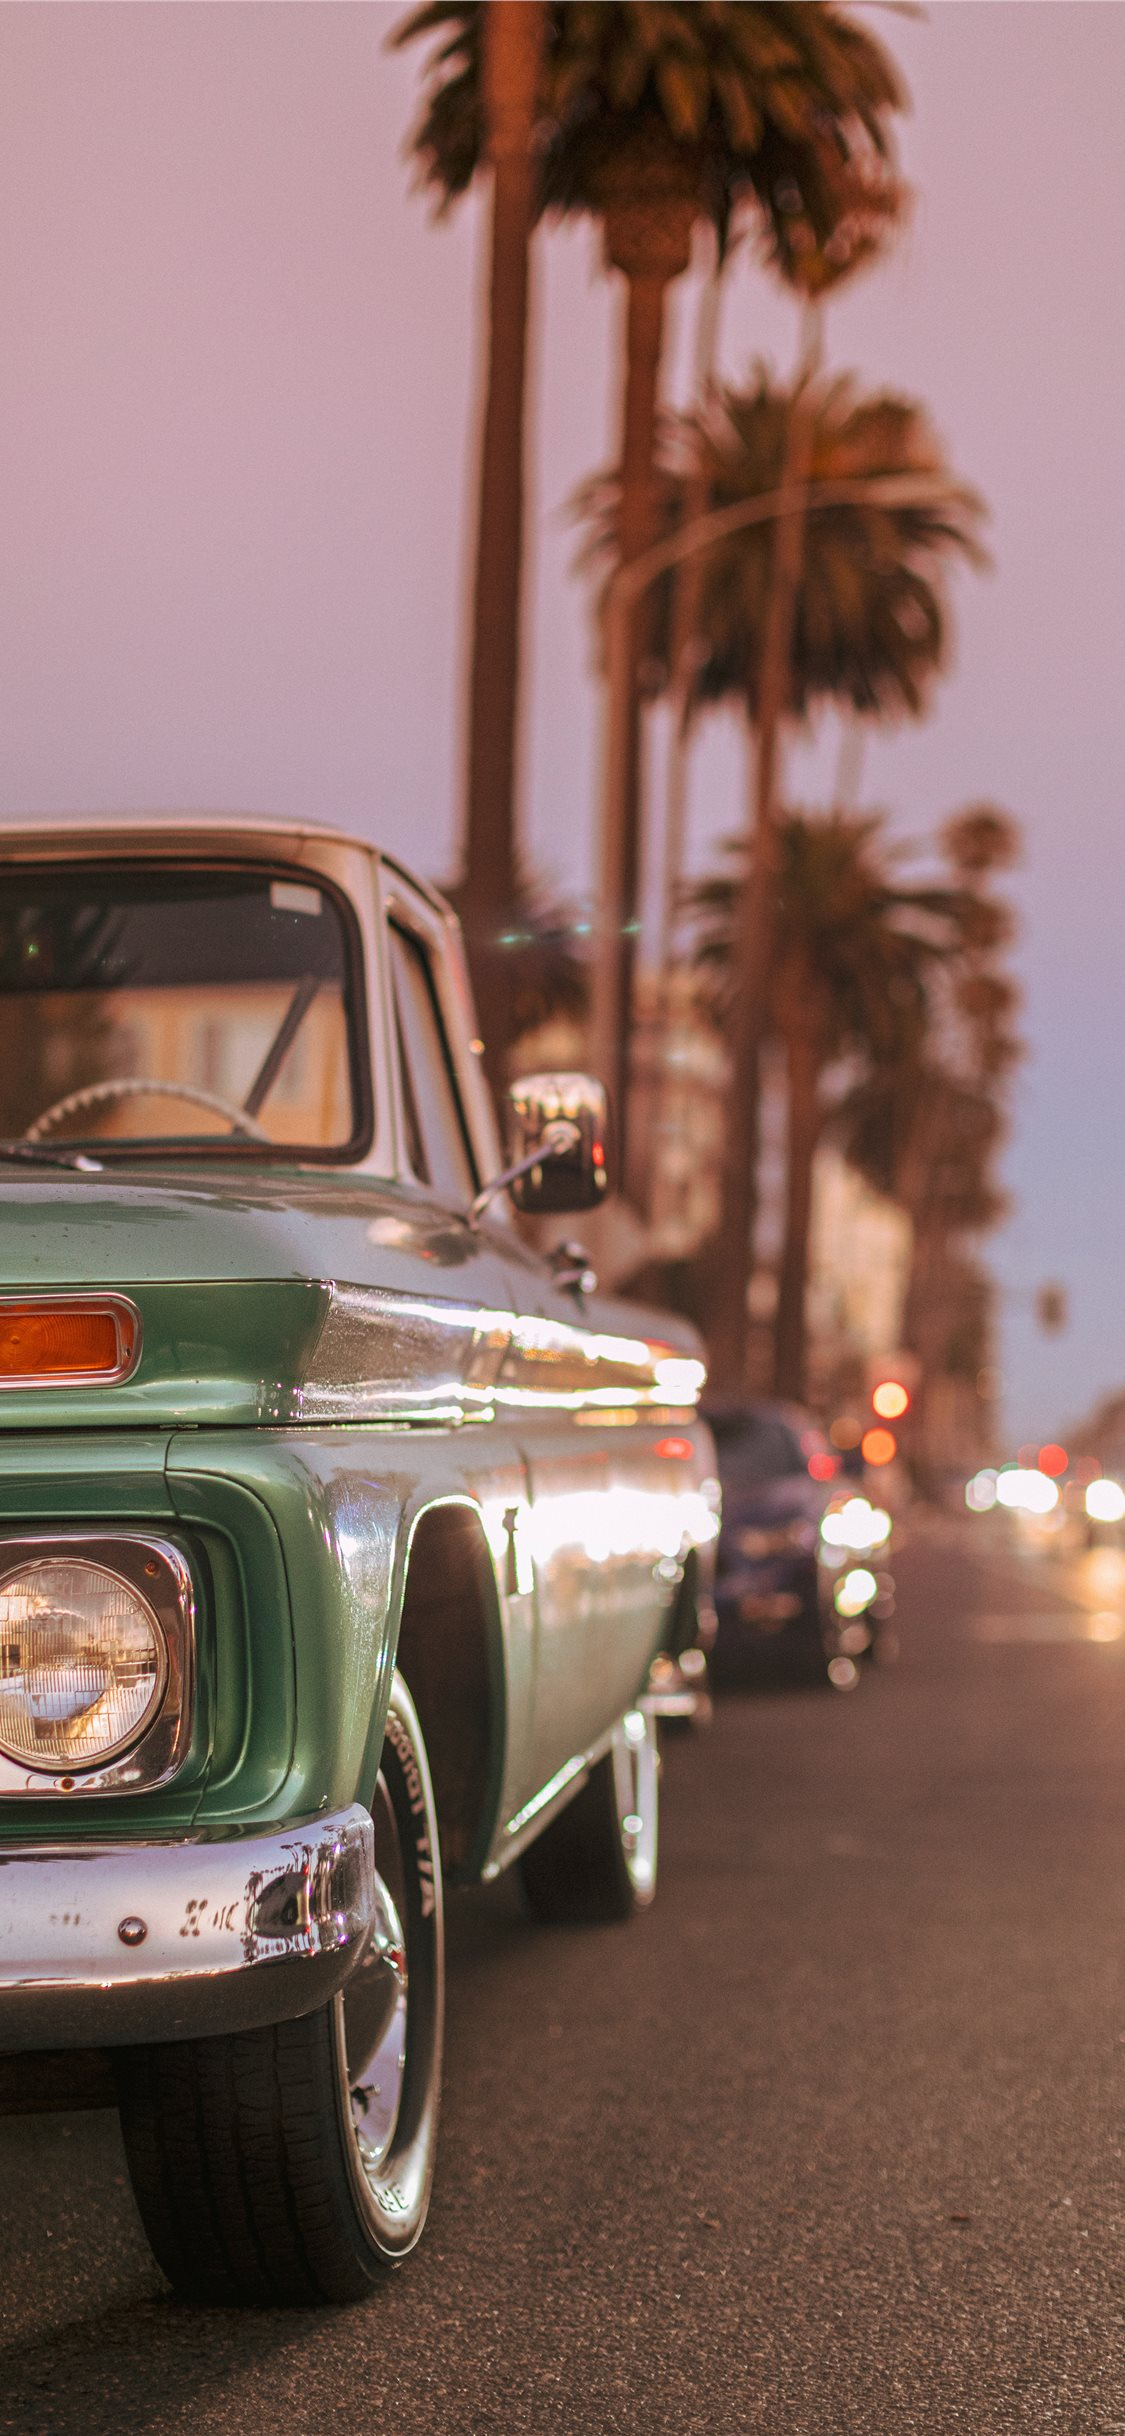 Vintage Car Parked On Ocean Blvd During Sunset Iphone X Wallpapers Free Download